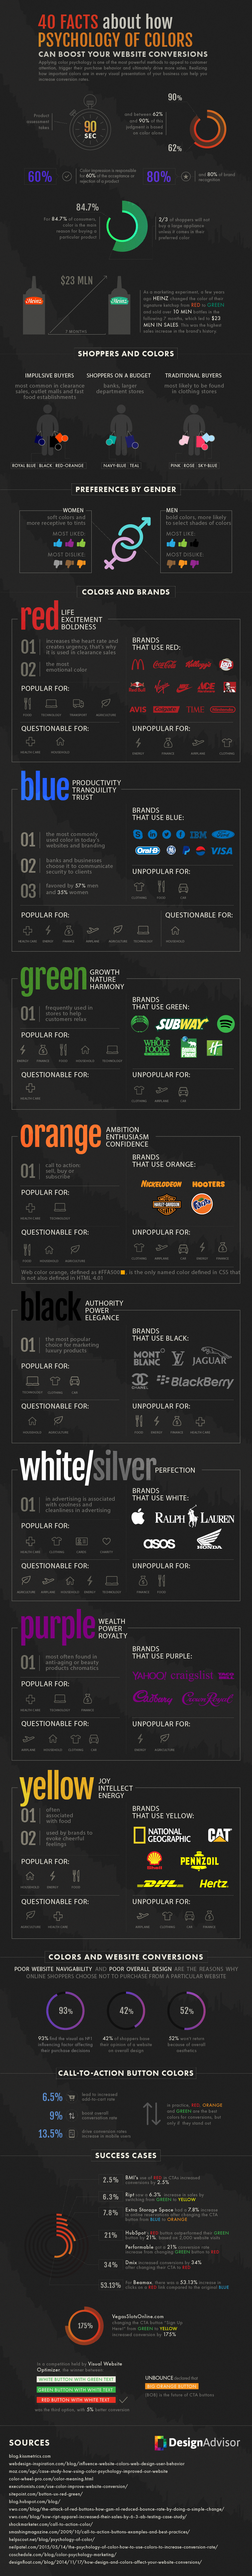 40 Facts About How Psychology of Color Can Boost Your Website Conversions(Infographic)